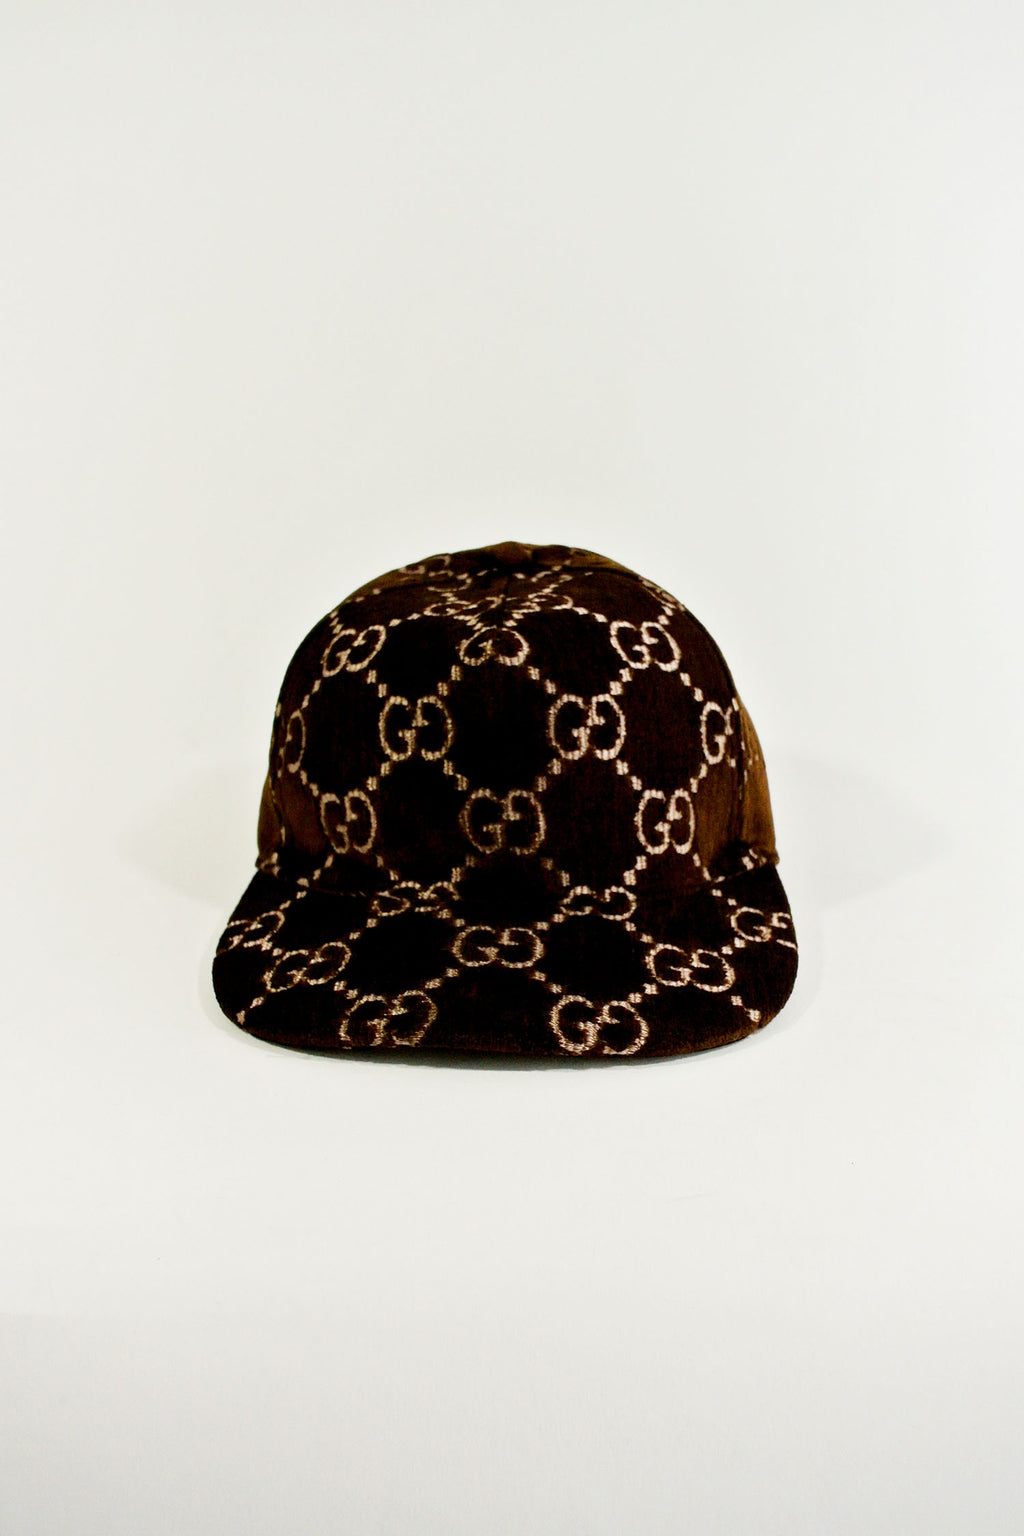 Gucci Brown Monogram Velvet Hat NWT